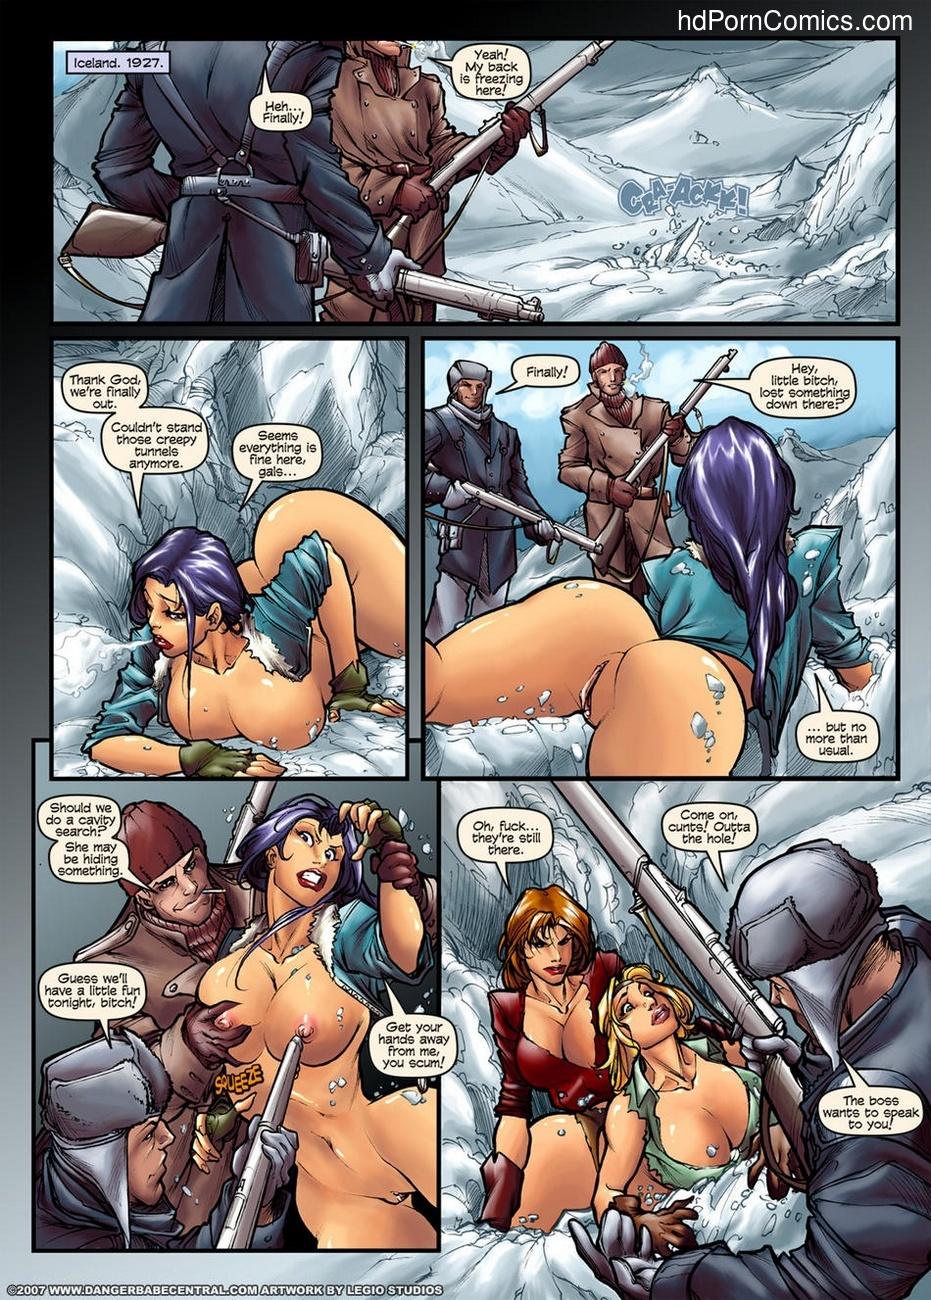 Sexy Seekers 1 - A Warm And Slimy Welcome 17 free sex comic